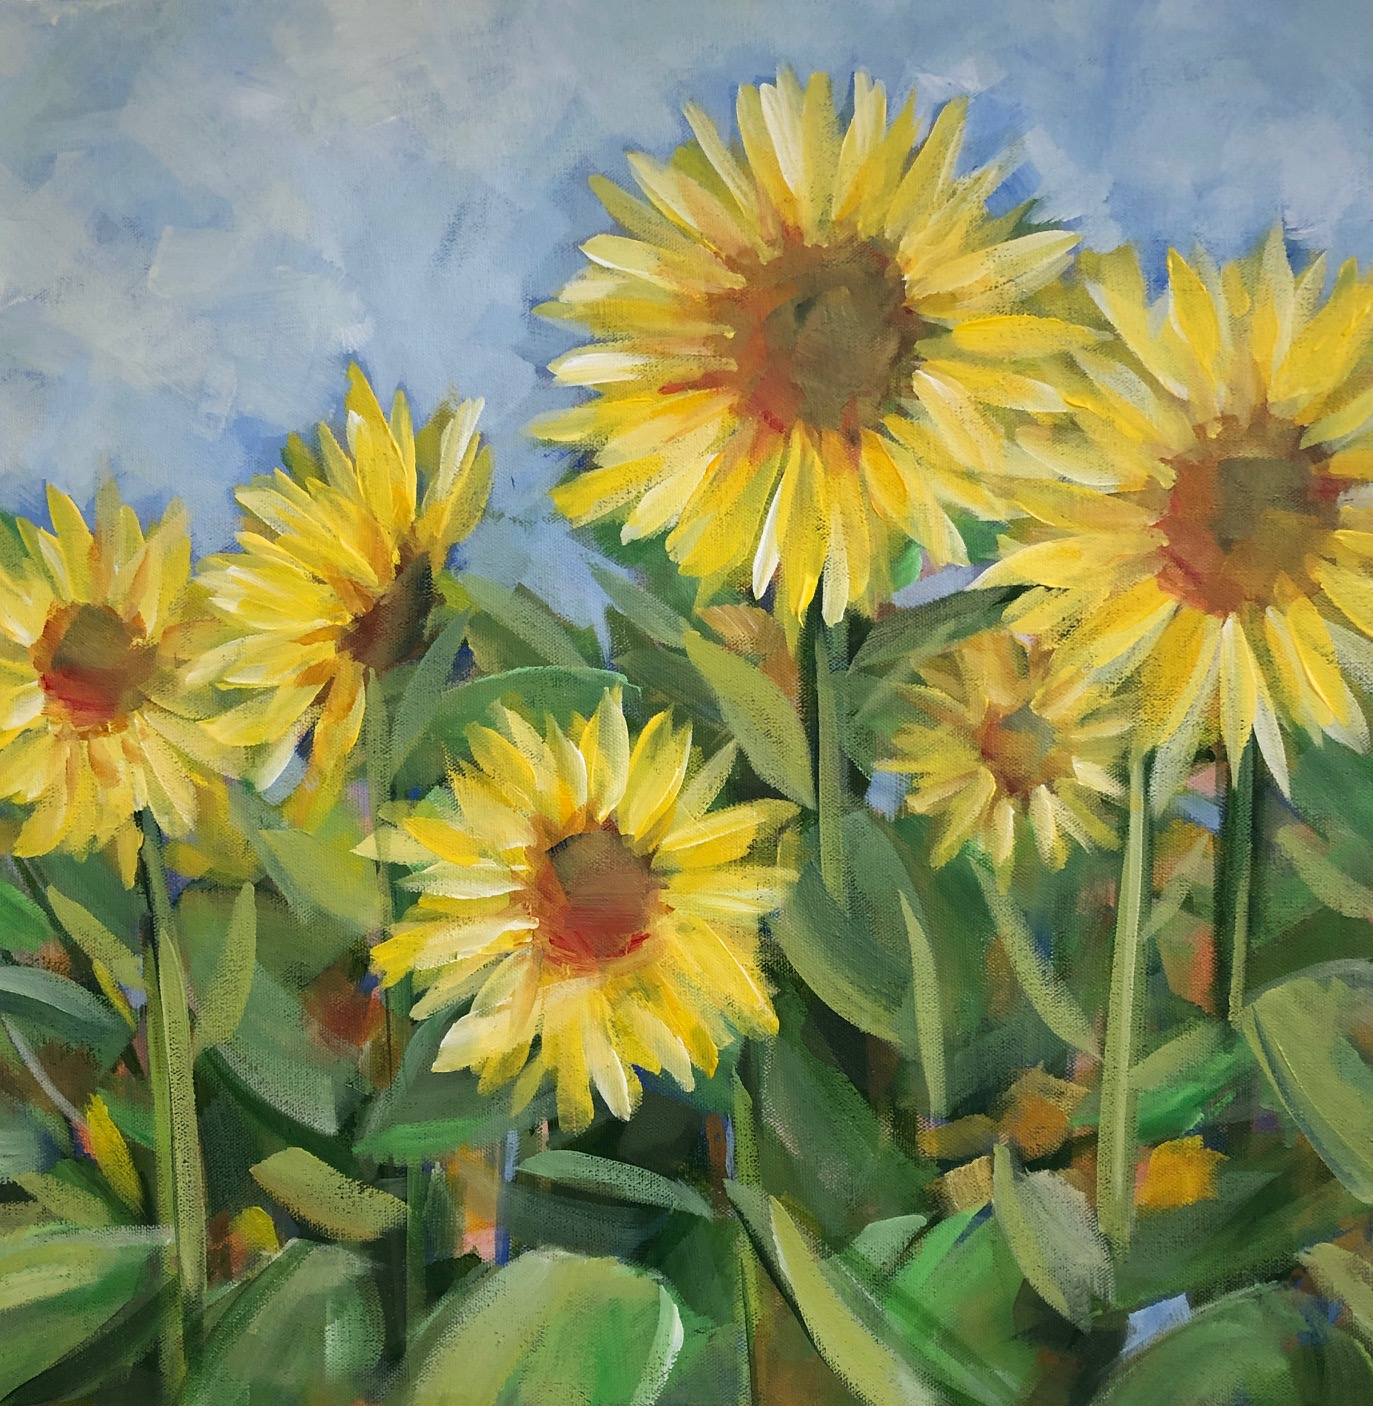 Sunflowers - 2019